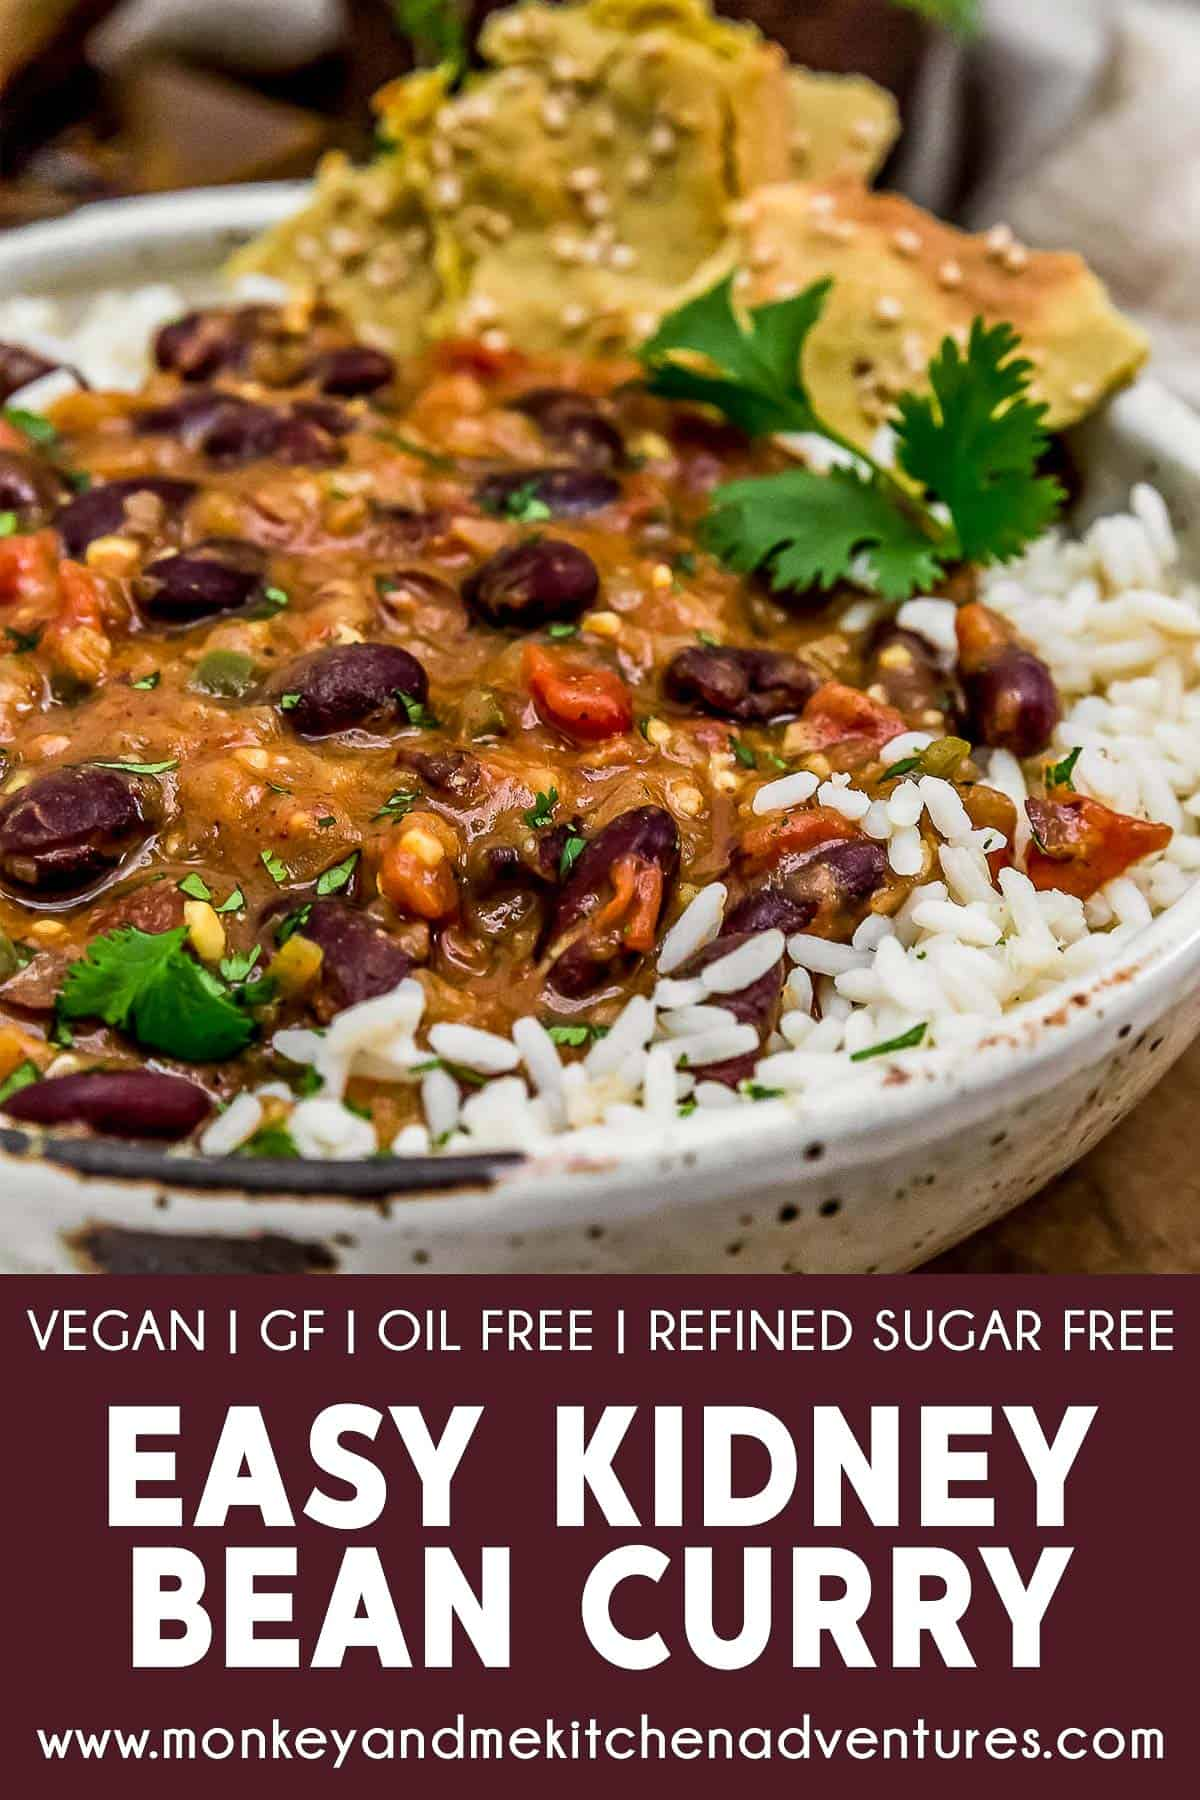 Easy Kidney Bean Curry with text description